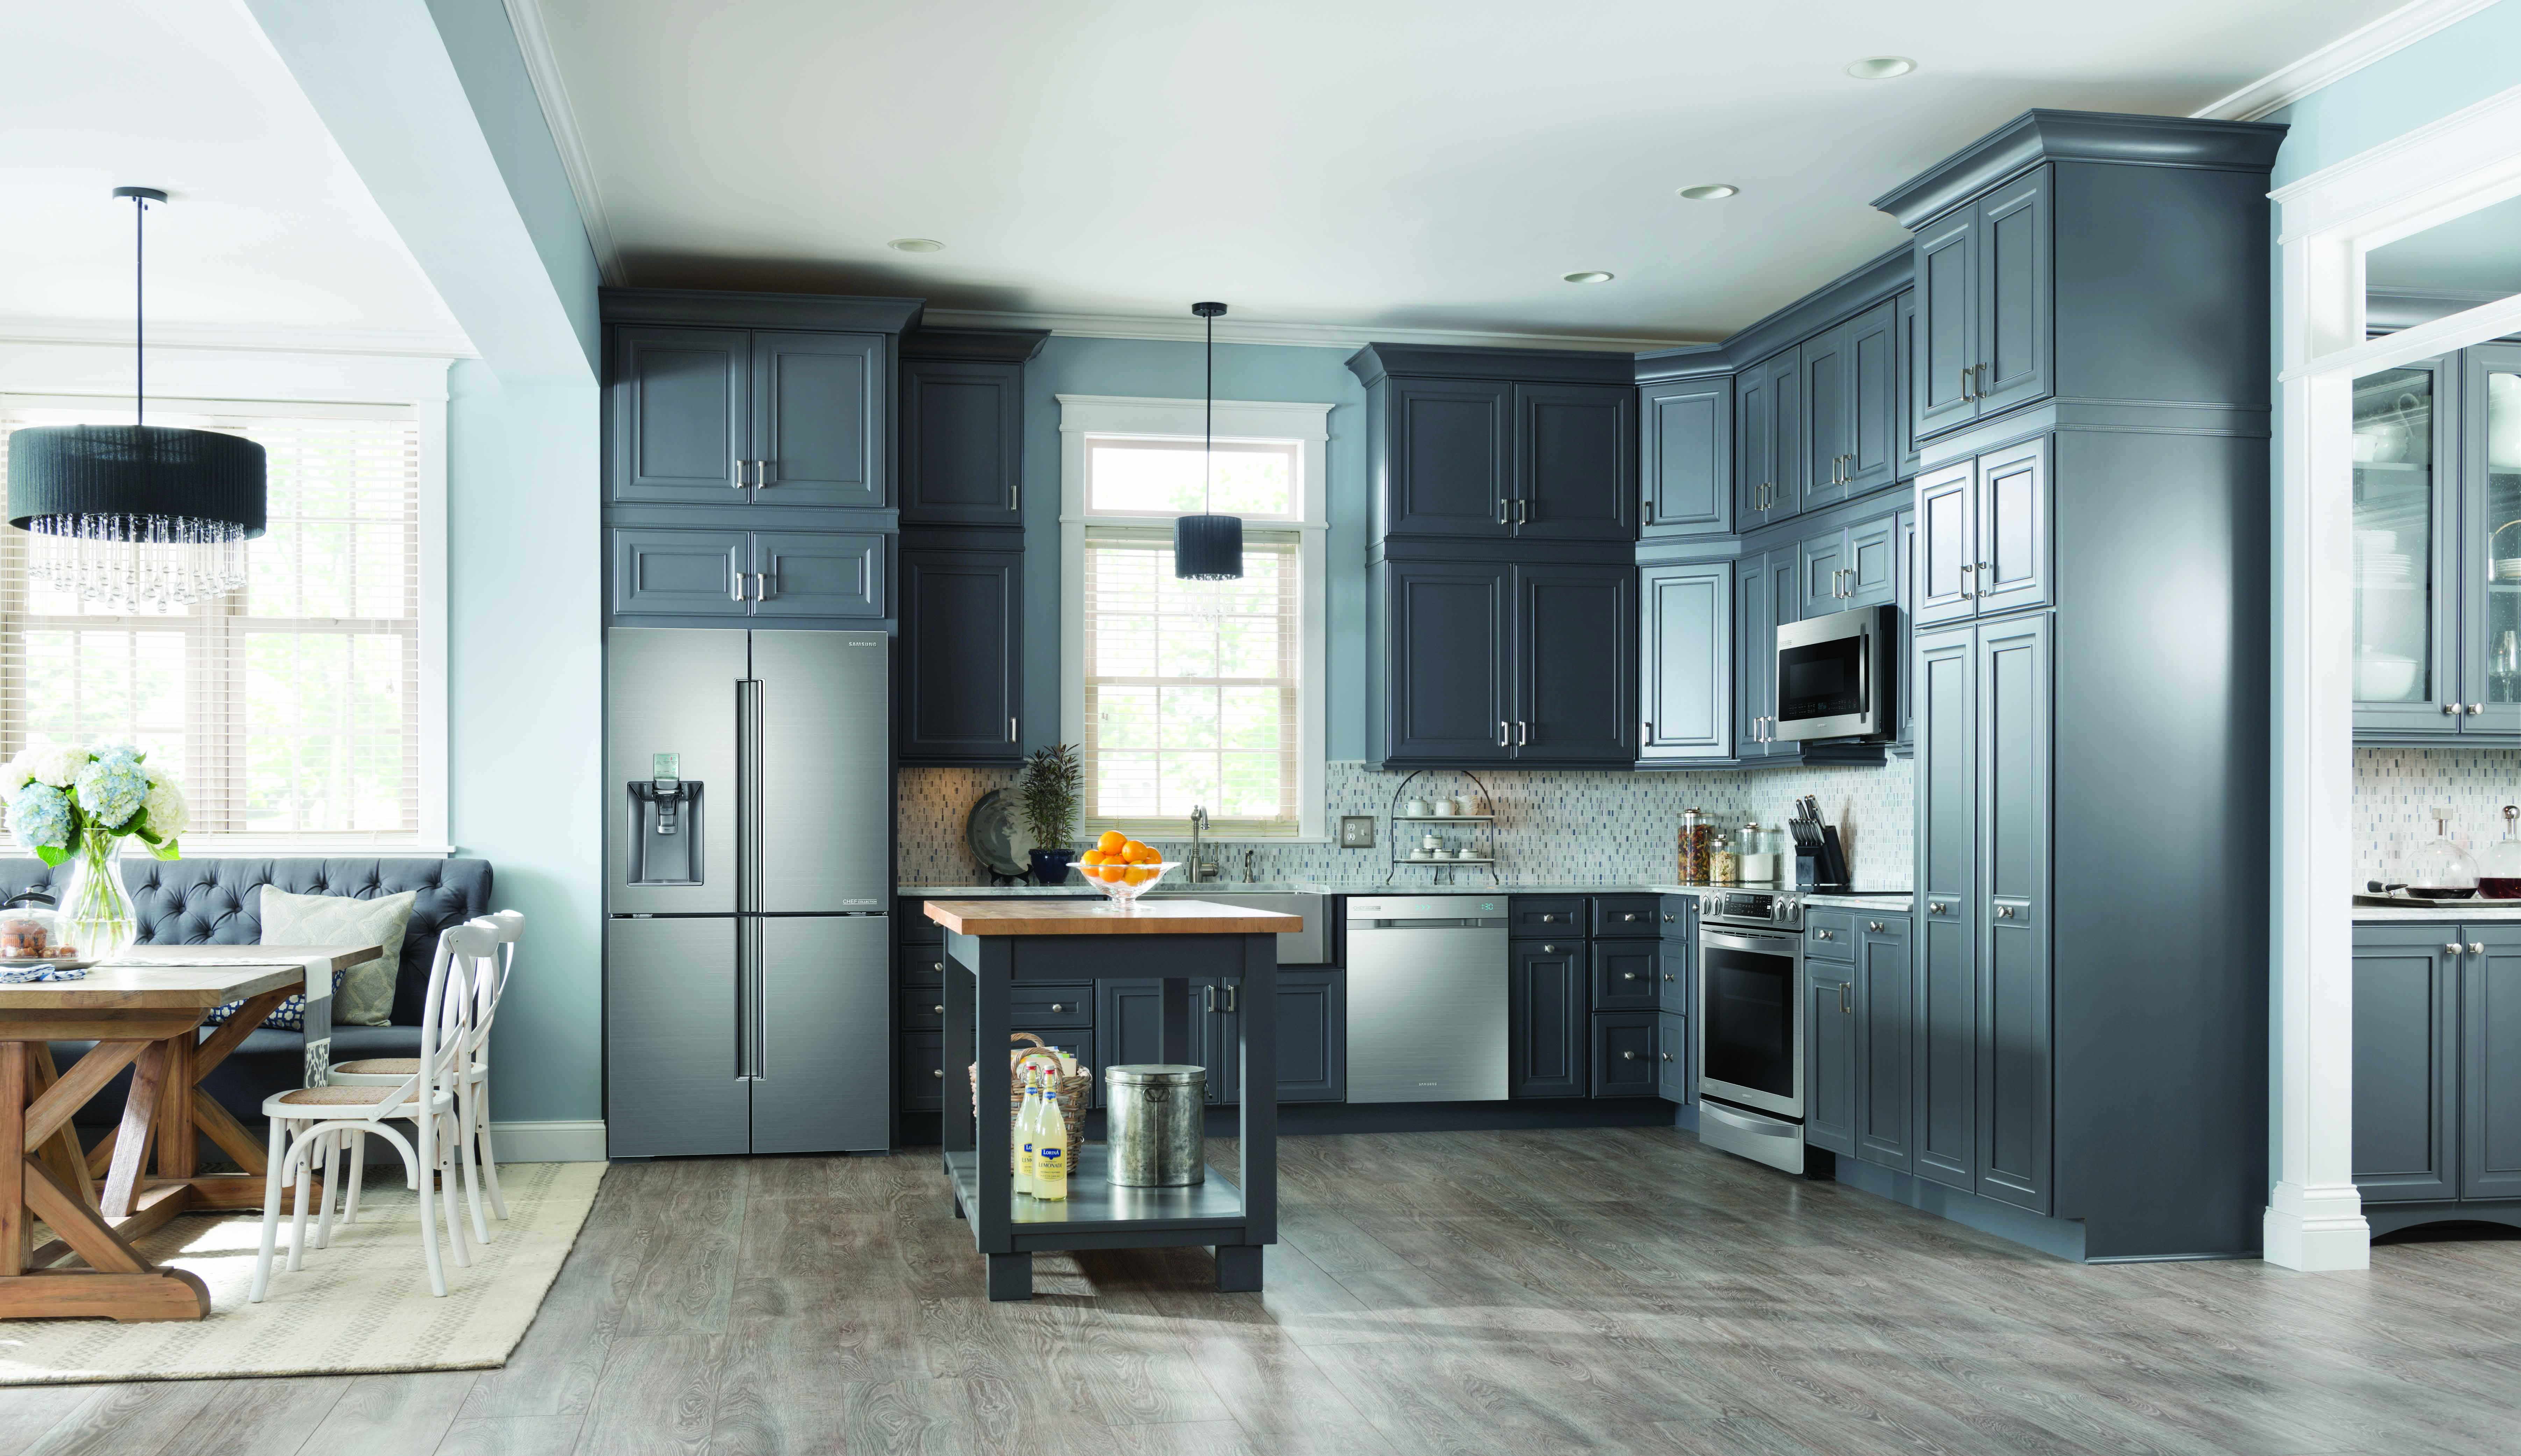 lifestyle samsung canada the samsung chef collection are reinventing the home do the. Black Bedroom Furniture Sets. Home Design Ideas